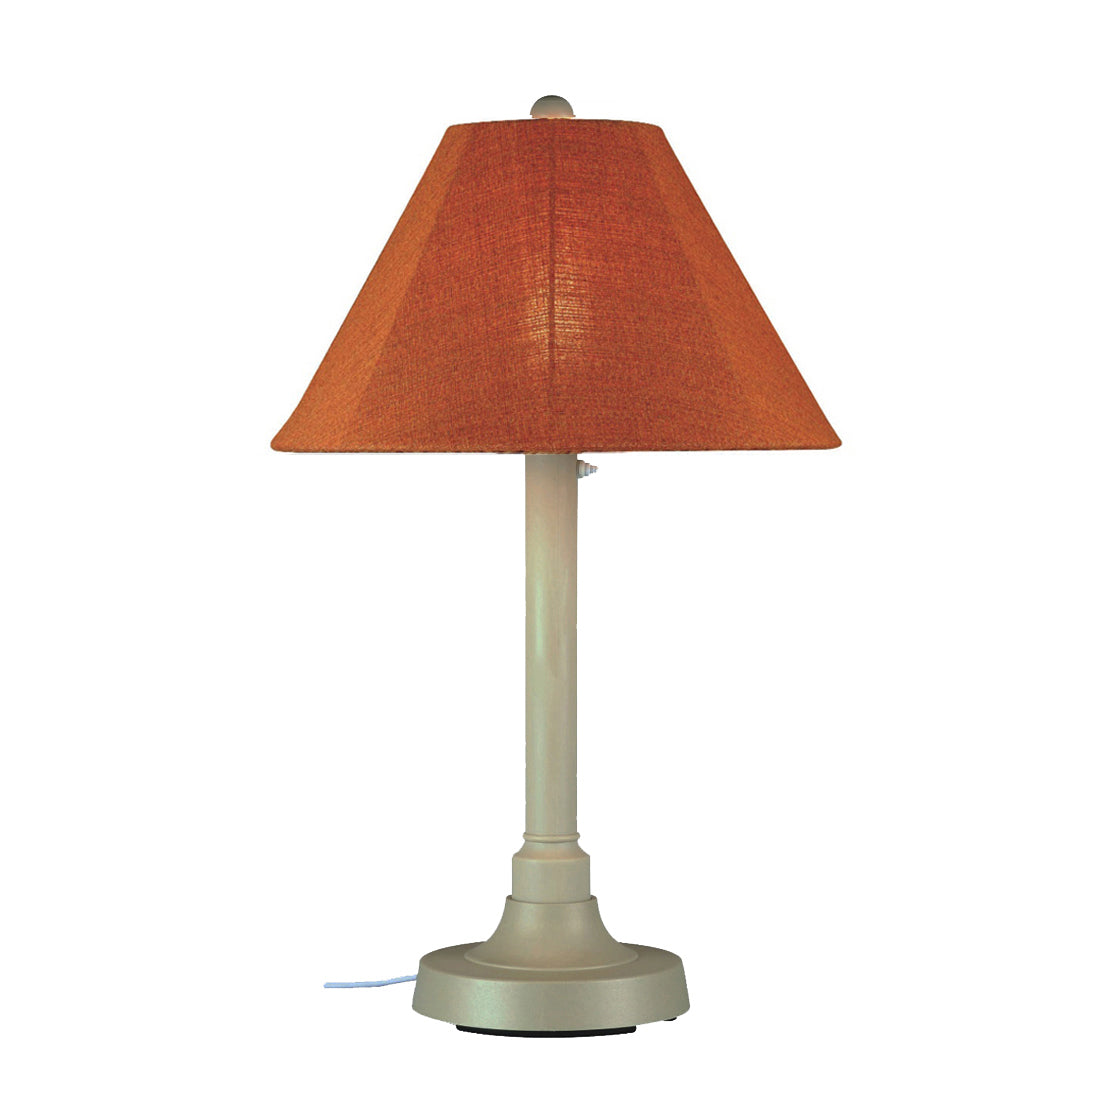 "San Juan 34"" Table Lamp 30115 with 2"" bisque body and chili linen Sunbrella shade fabric"